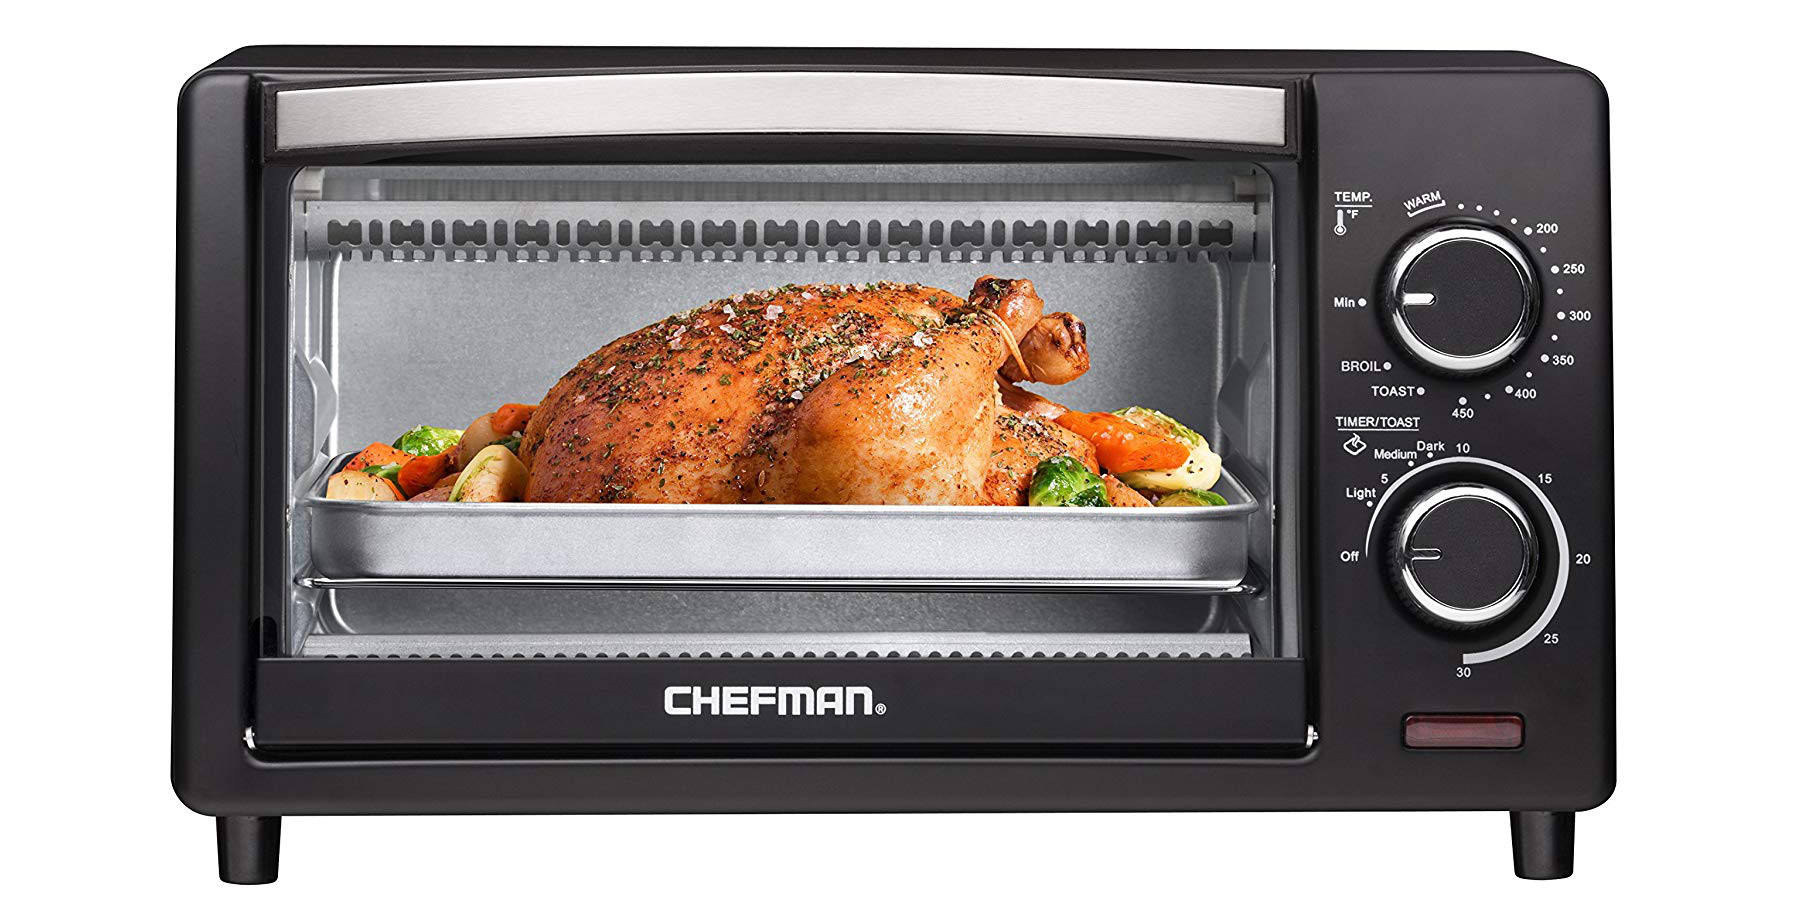 Put A Brand New Chefman 4 Slice Toaster Oven On Your